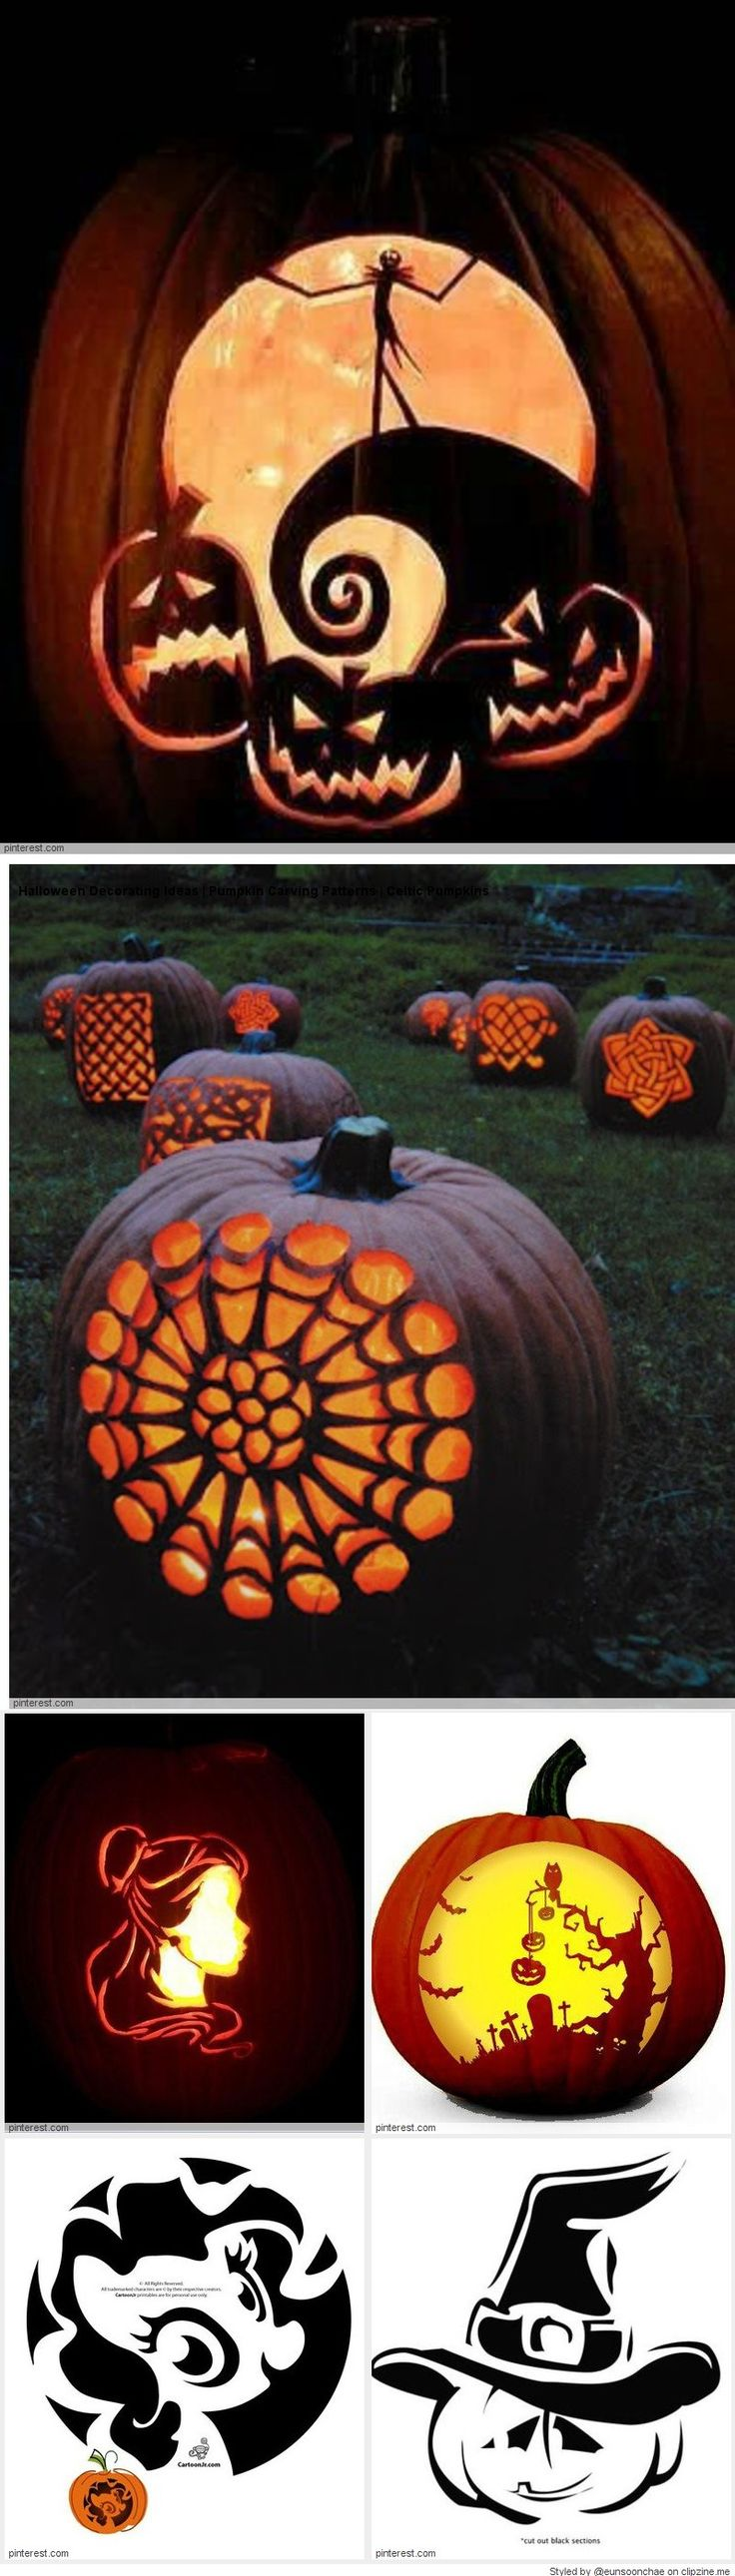 Best 45 Master Carving images on Pinterest | Holidays and events ...